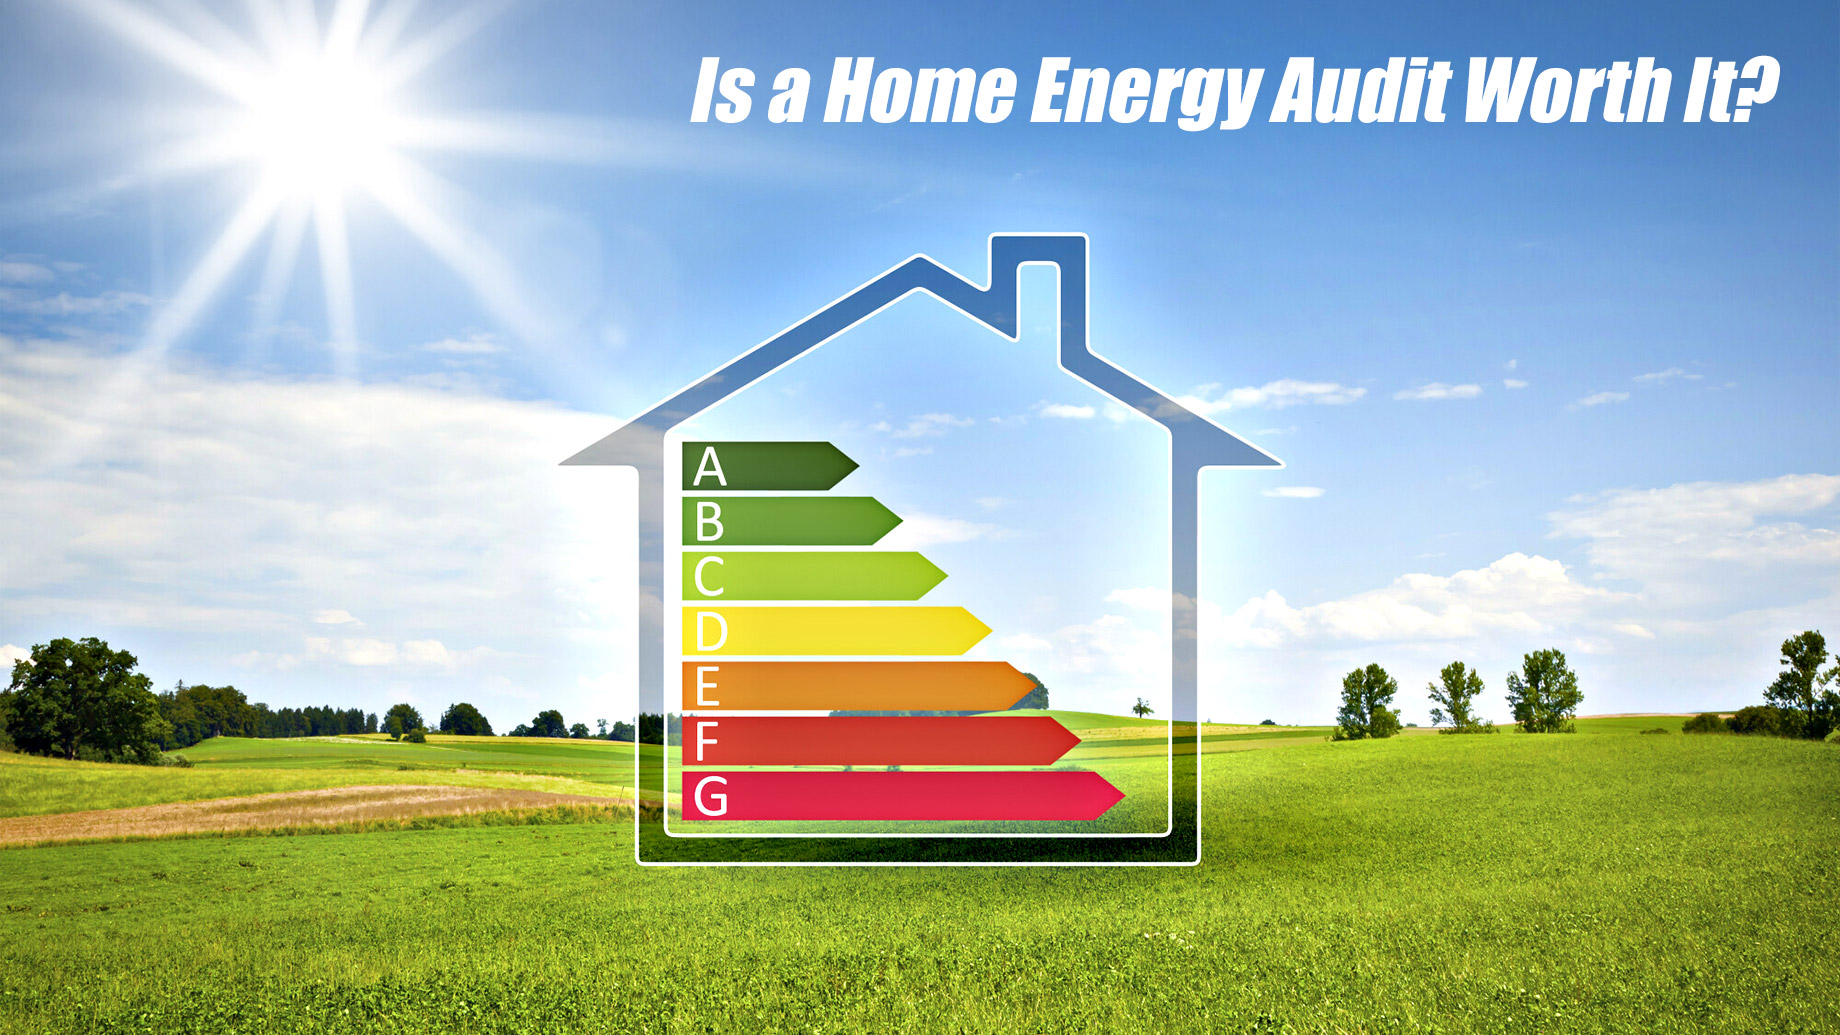 Is a Home Energy Audit Worth It?